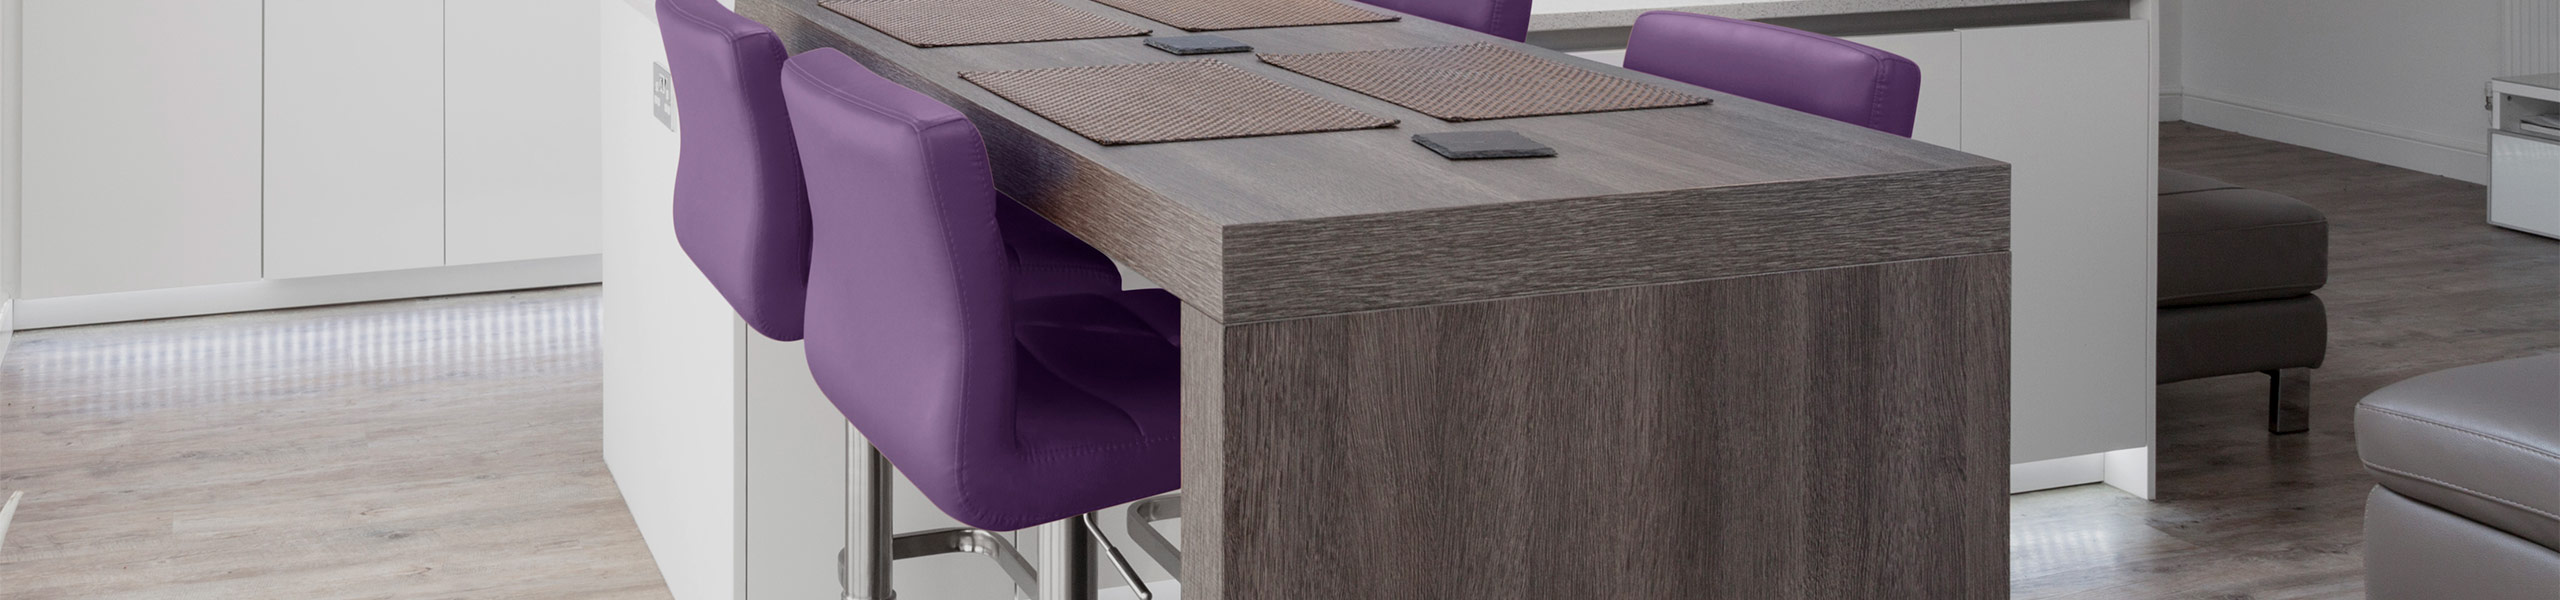 Lush Brushed Steel Bar Stool Purple Video Banner